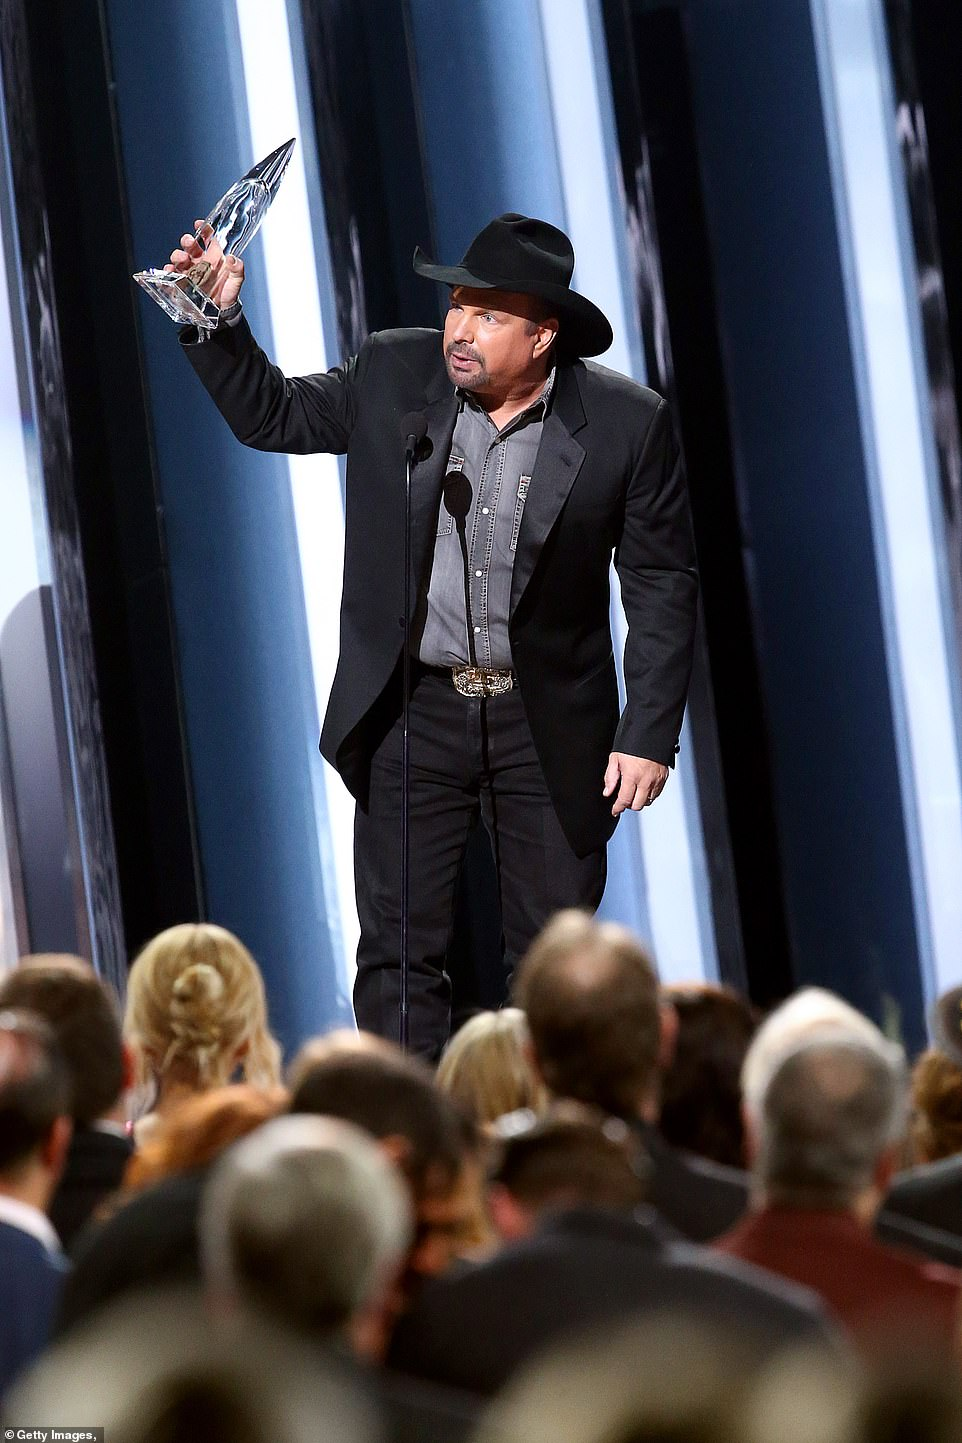 Entertainer of the Year:But it was country legend Garth Brooks, who launched a Stadium Tour and Dive Bar Tour in 2019, who won Entertainer of the Year despite having no new album